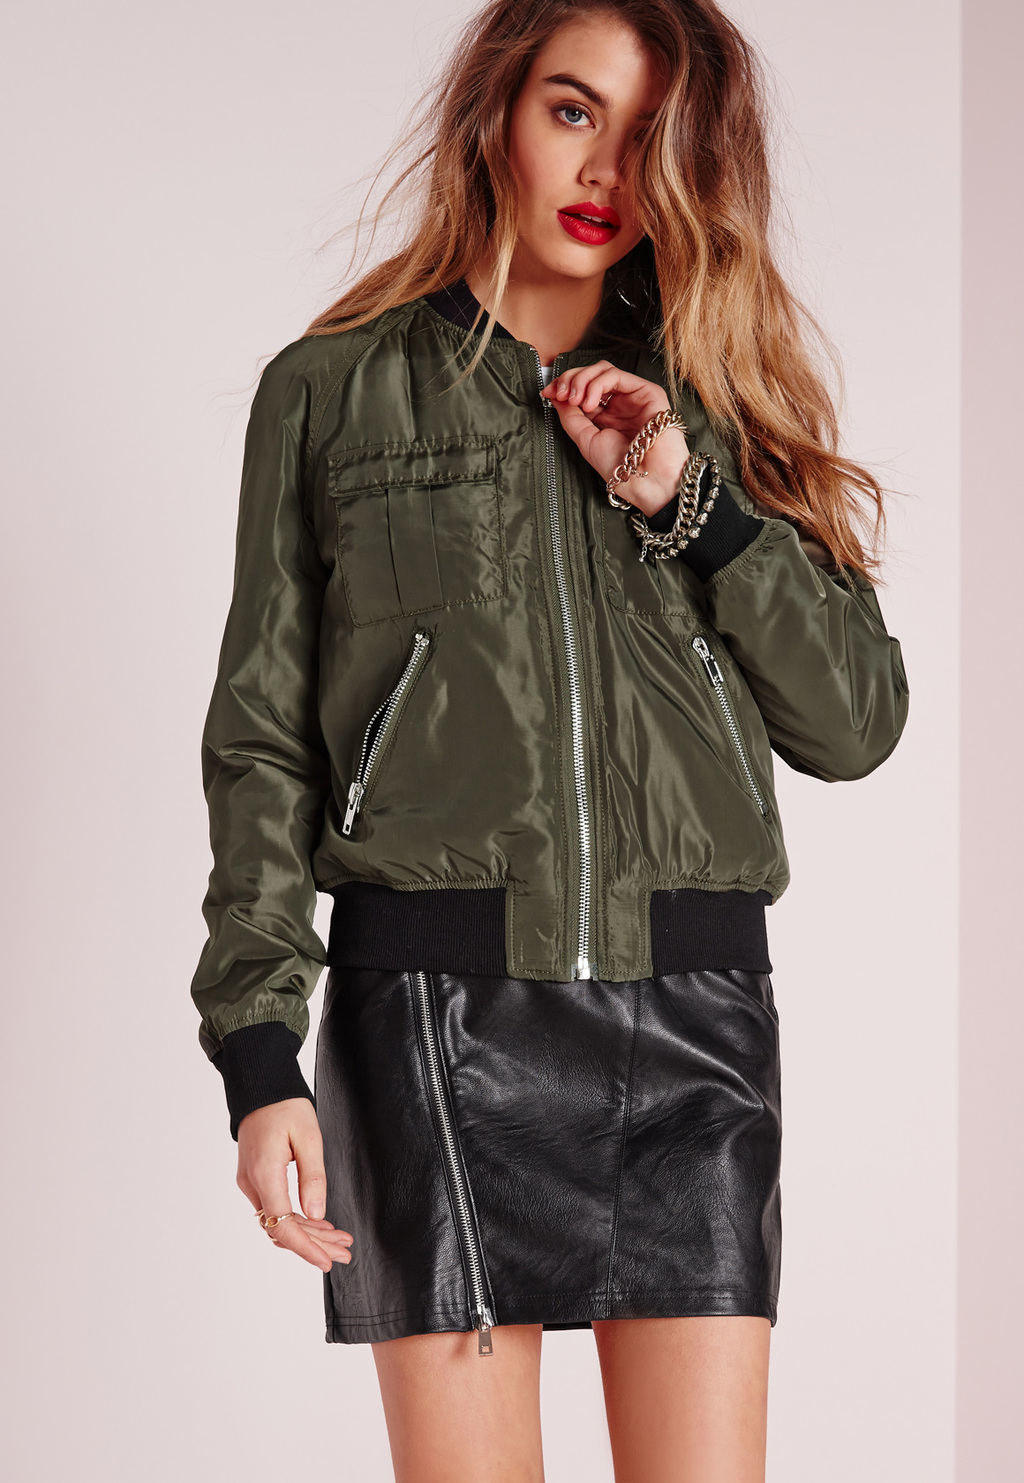 Utility Bomber Jacket Khaki, Beige - collar: round collar/collarless; style: bomber; predominant colour: khaki; secondary colour: black; occasions: casual; length: standard; fit: straight cut (boxy); fibres: polyester/polyamide - 100%; sleeve length: long sleeve; sleeve style: standard; collar break: high; pattern type: fabric; pattern size: standard; pattern: colourblock; texture group: other - bulky/heavy; season: s/s 2016